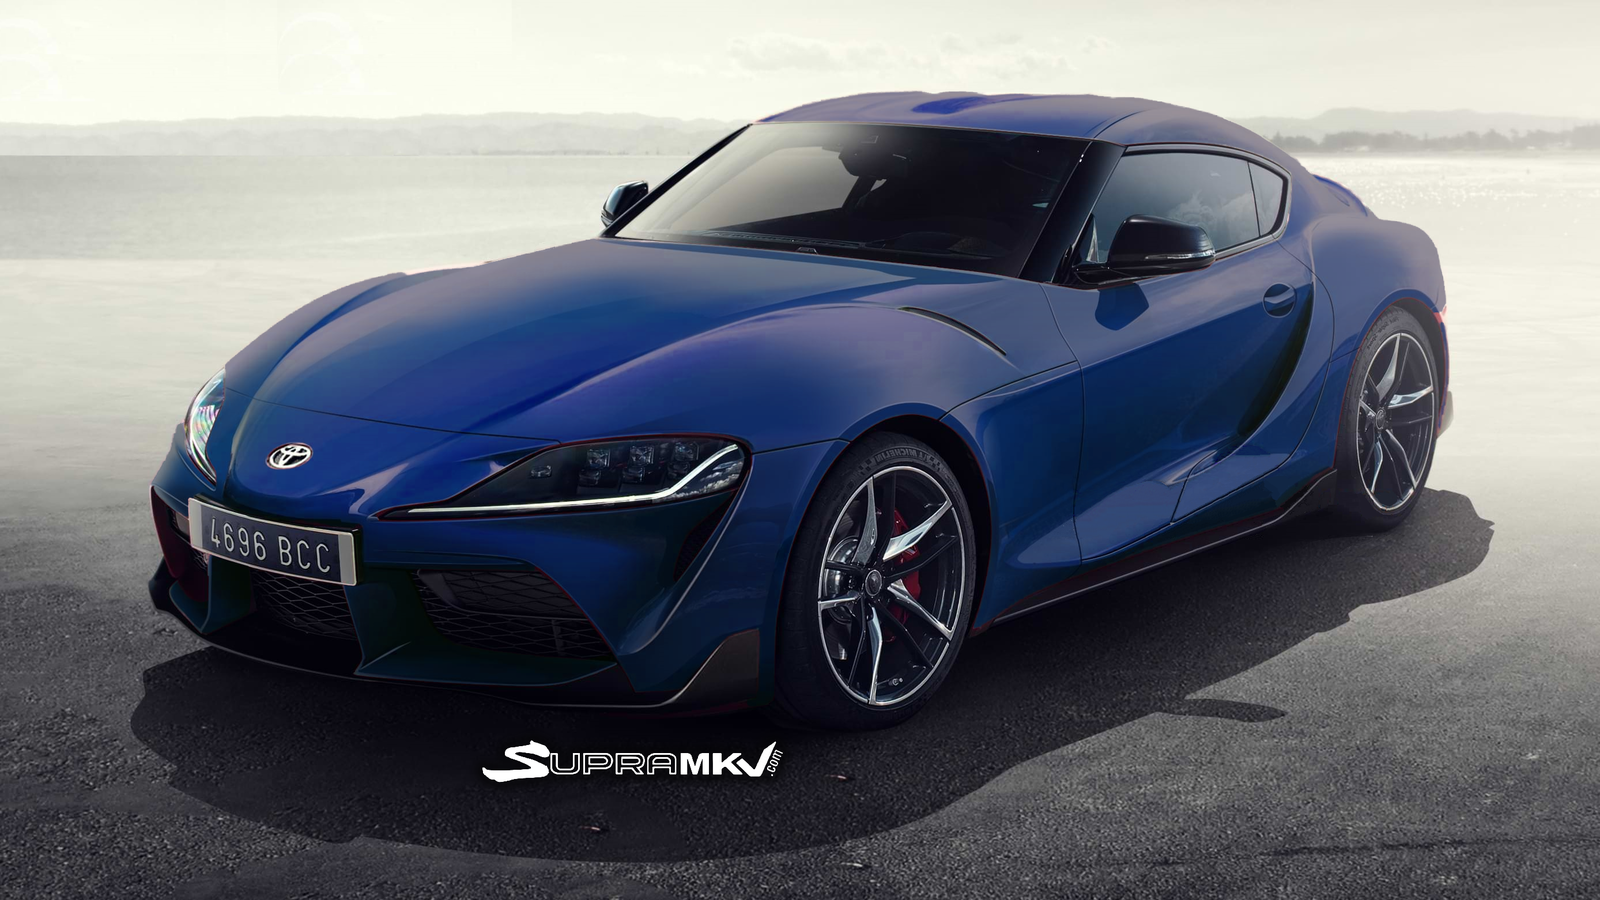 New Toyota Supra Renderings Based On Prototype Car